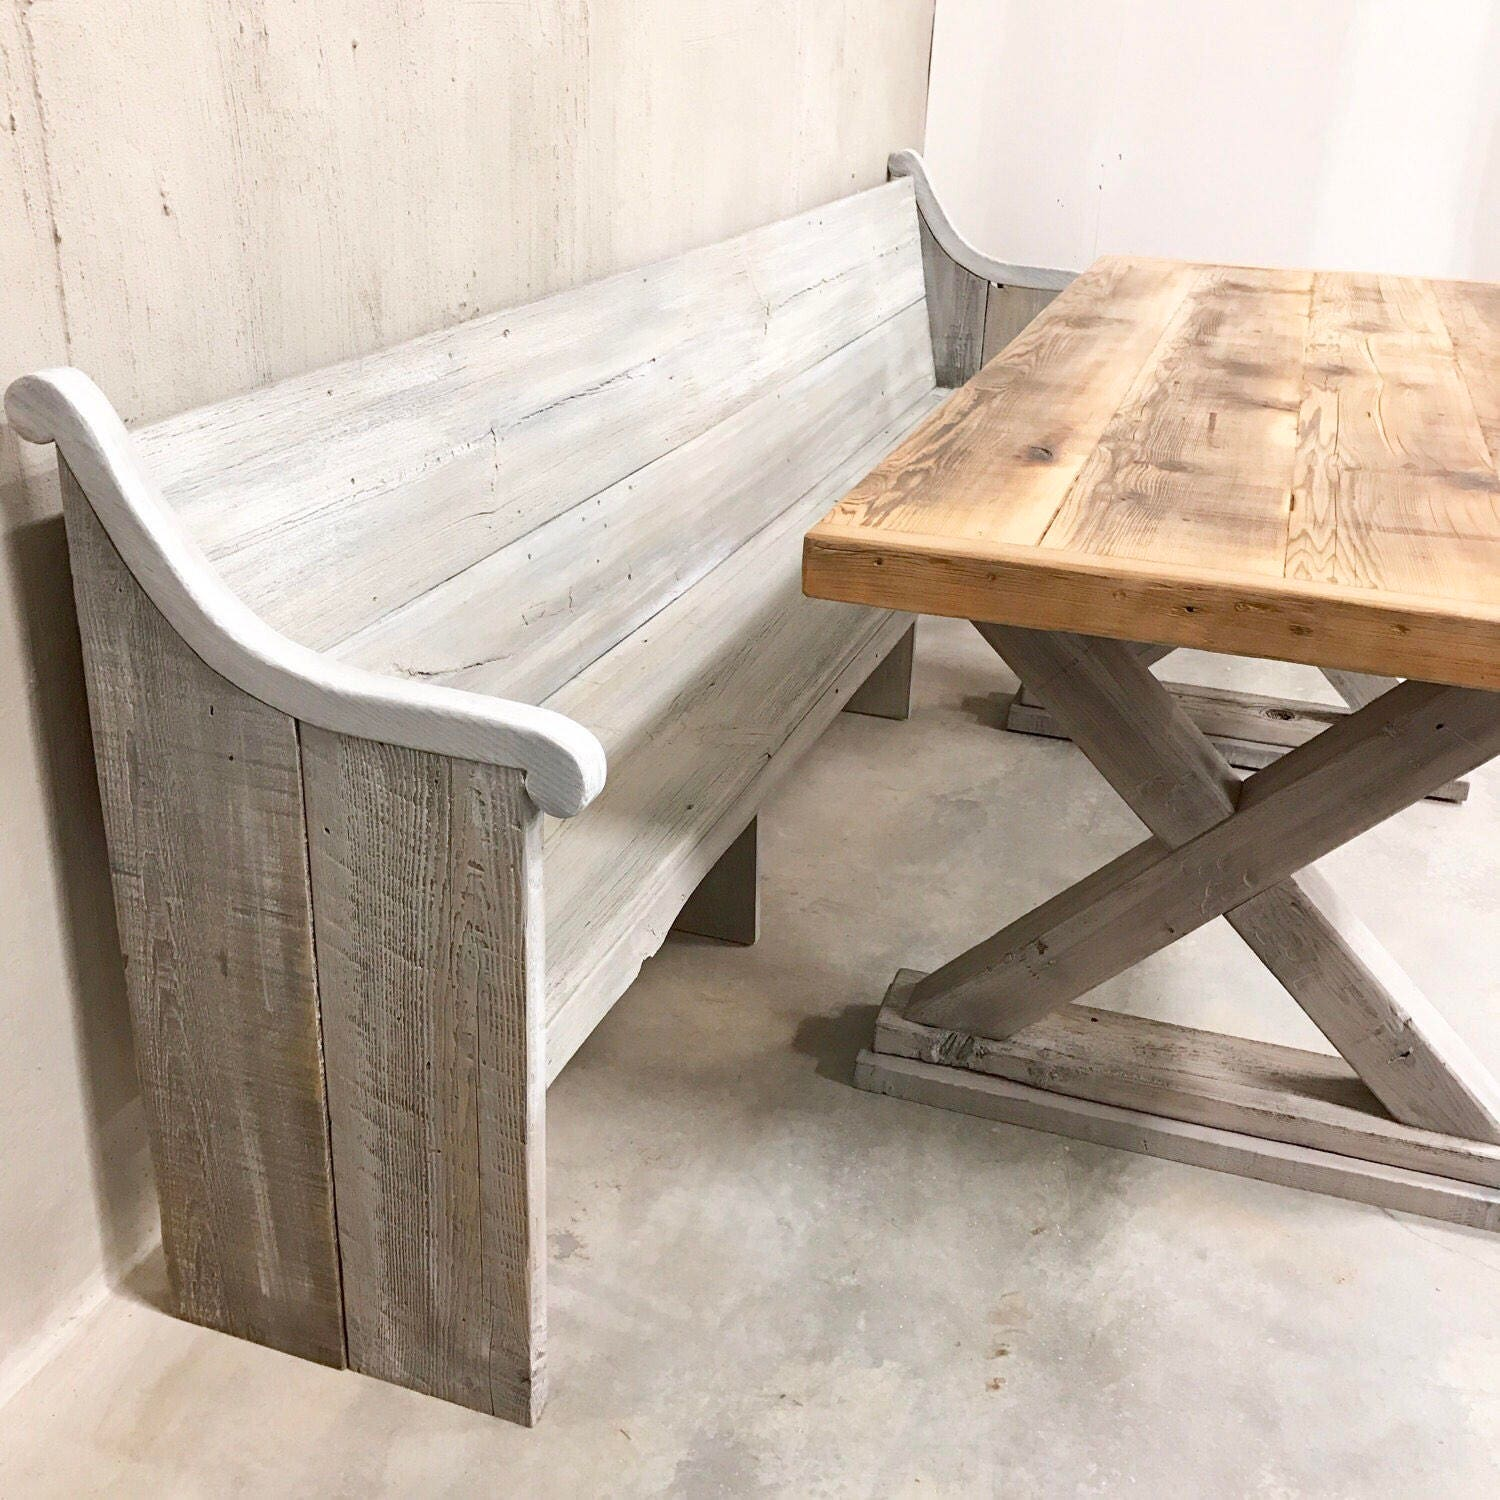 make for plans pinterest remodelaholic own bench from to diy of sale build footboard benches how and corner made old bed metal headboard your